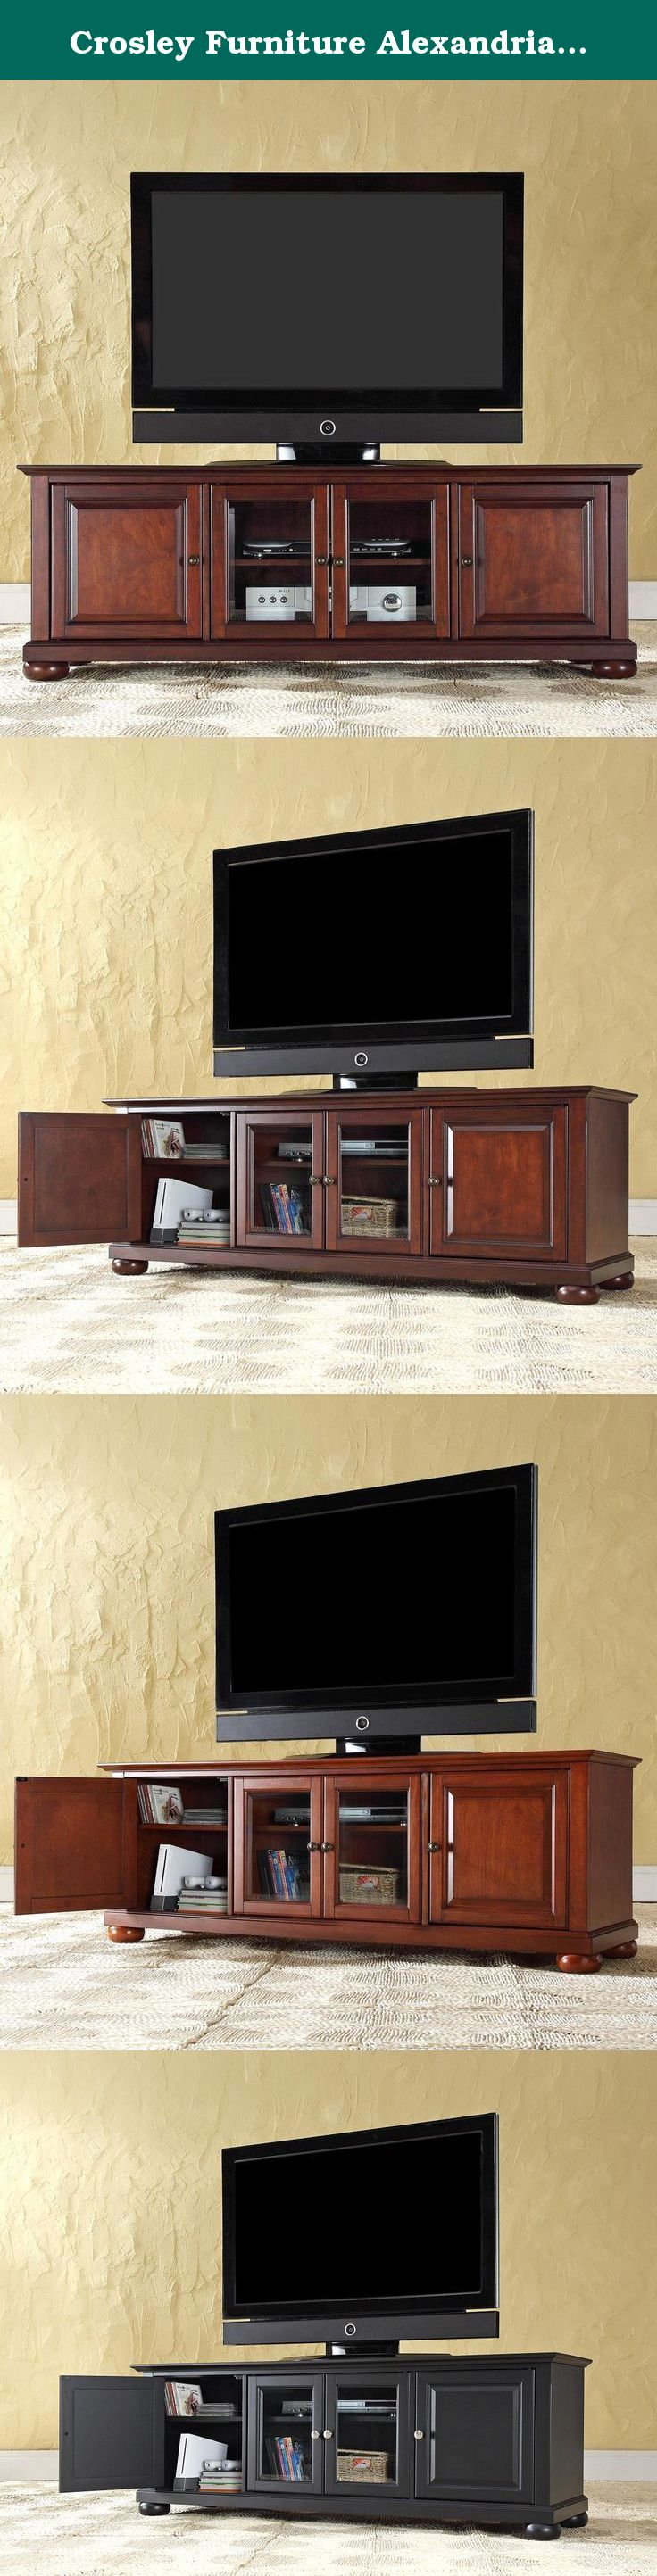 Crosley Furniture Alexandria 60 Inch Low Profile TV Stand Vintage Mahogany Enhance your